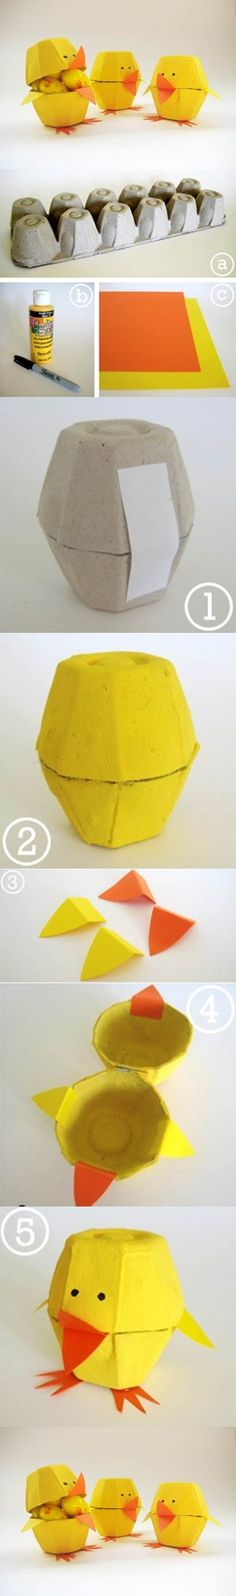 Egg Carton Craft - Lovely Chicks | iCreativeIdeas.com Like Us on Facebook ==> https://www.facebook.com/icreativeideas